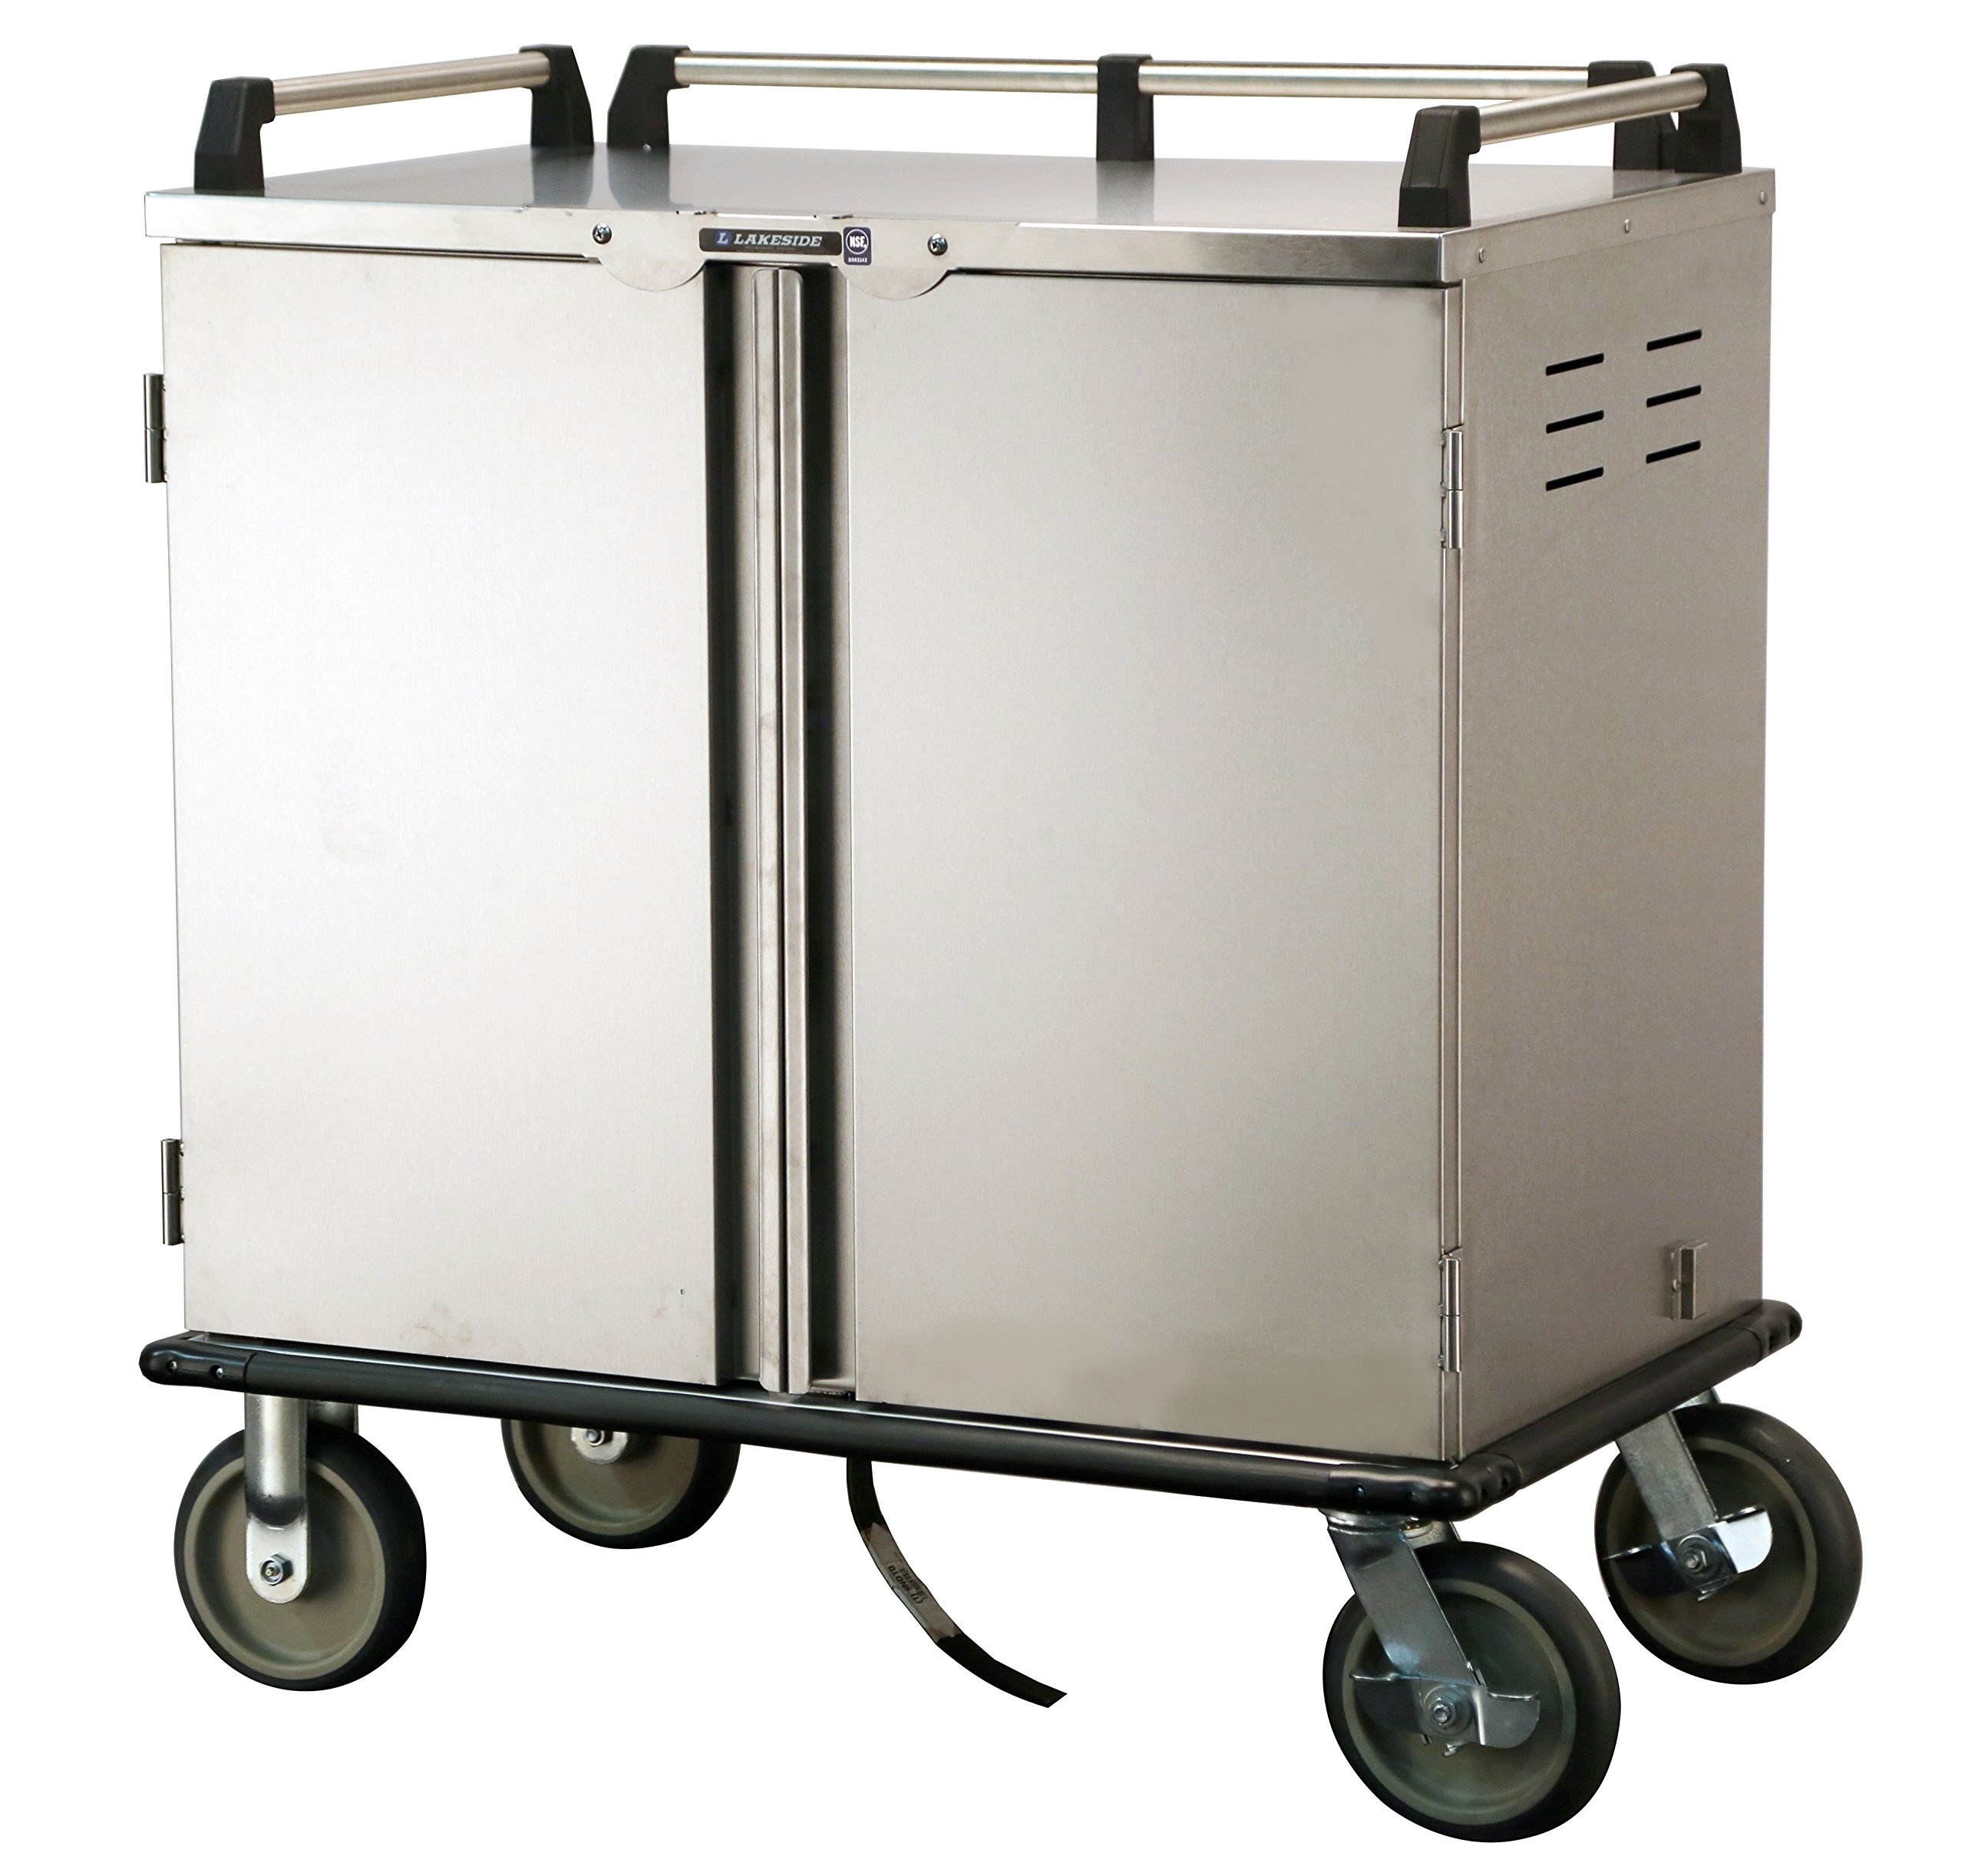 Lakeside 5510, Elite Series, Enclosed Room Service, Tray Delivery Cart; Stainless Steel, 12 Tray Capacity, 32-1/4'' x 36-3/4'' x 48-3/4'' by Lakeside (Image #1)